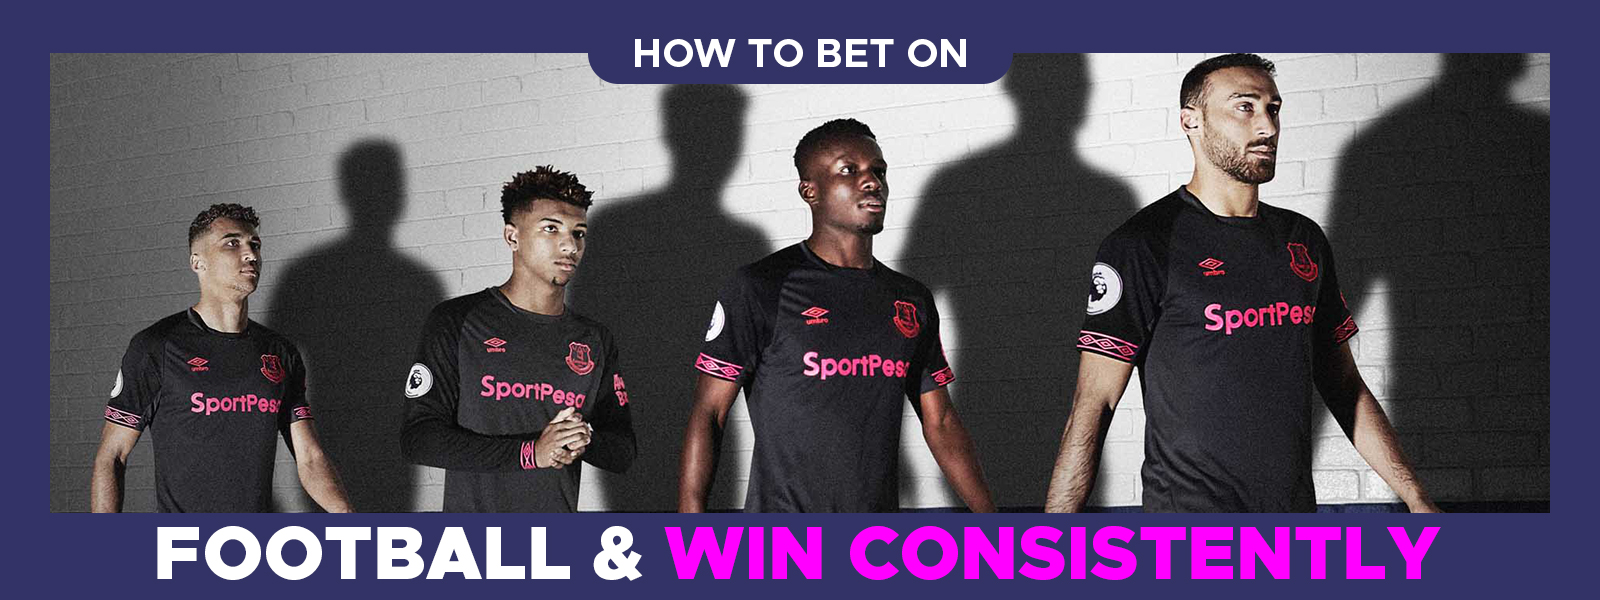 3 Easy Steps To Start Betting on Football & Win